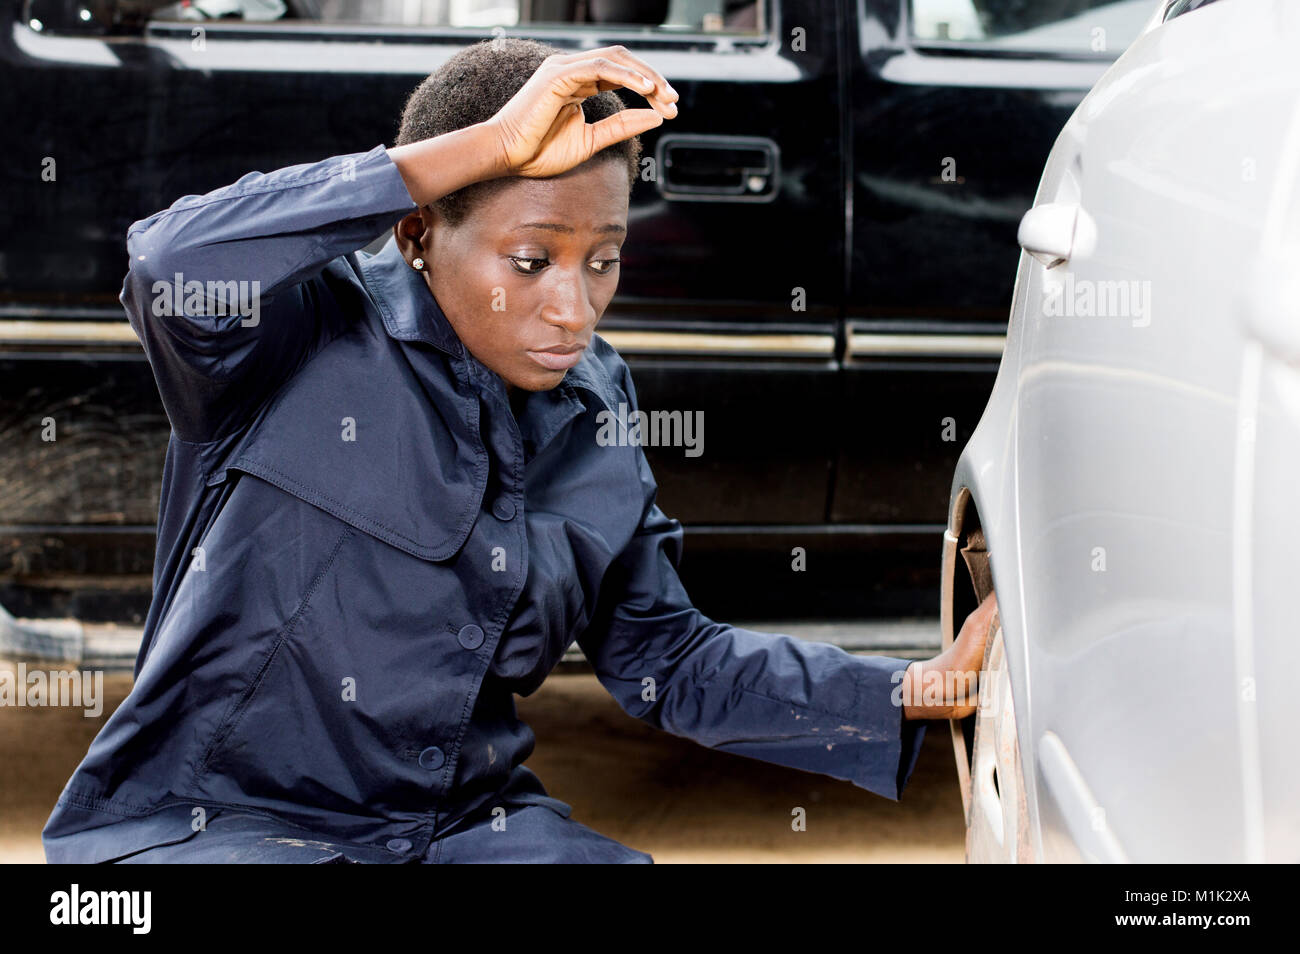 Closeup  of young woman mechanic changing the tire of a car in her garage. - Stock Image